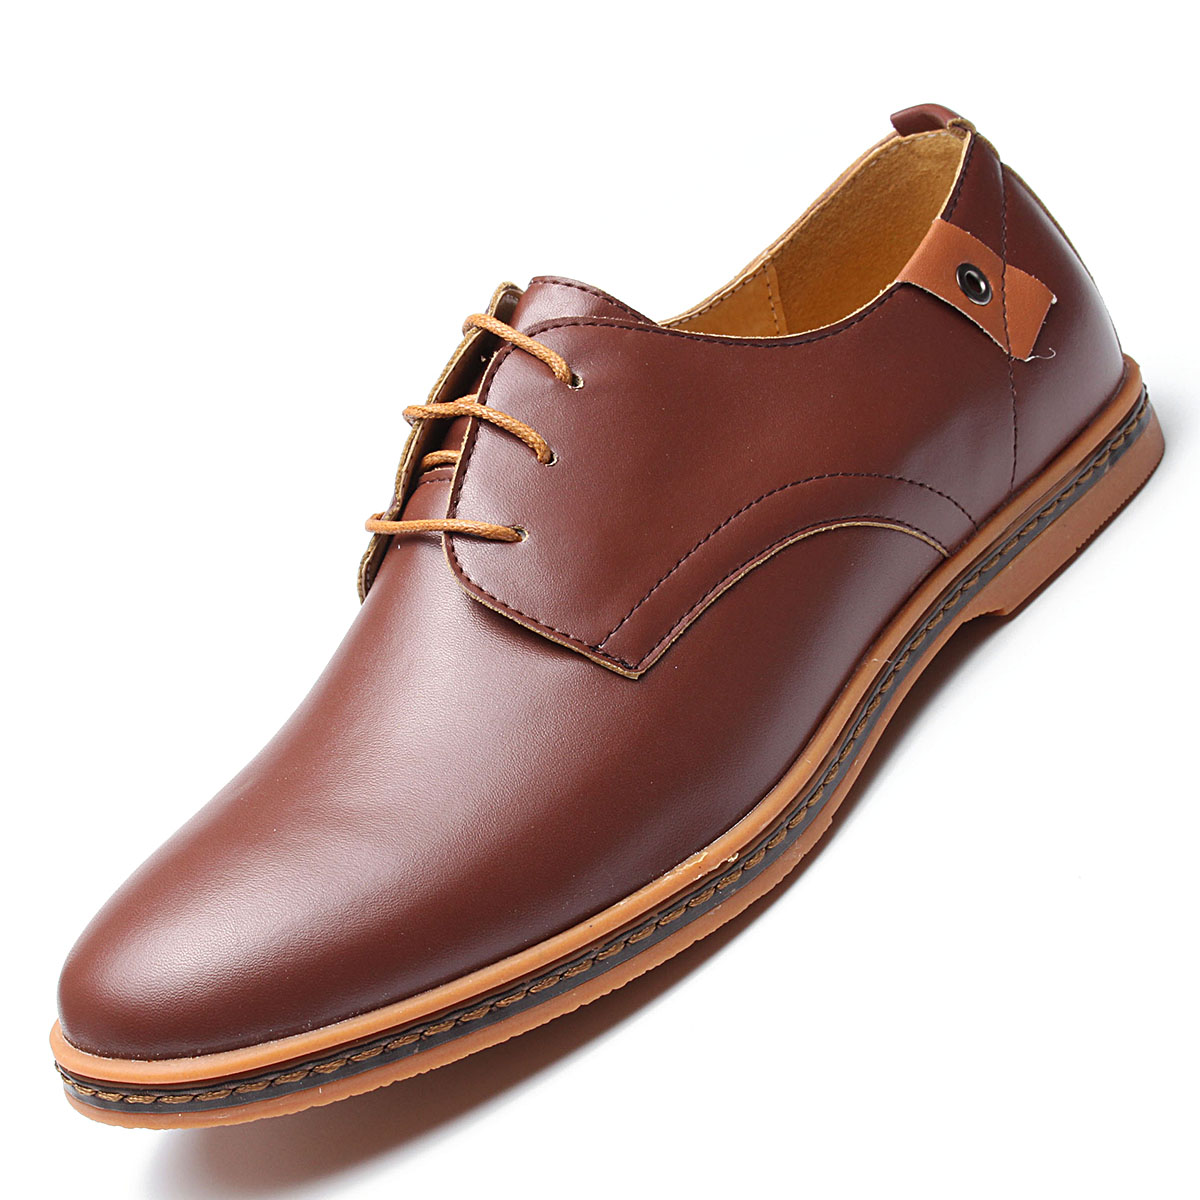 Homme chaussures en cuir Business chaussures habillées chaussures I1Ny3